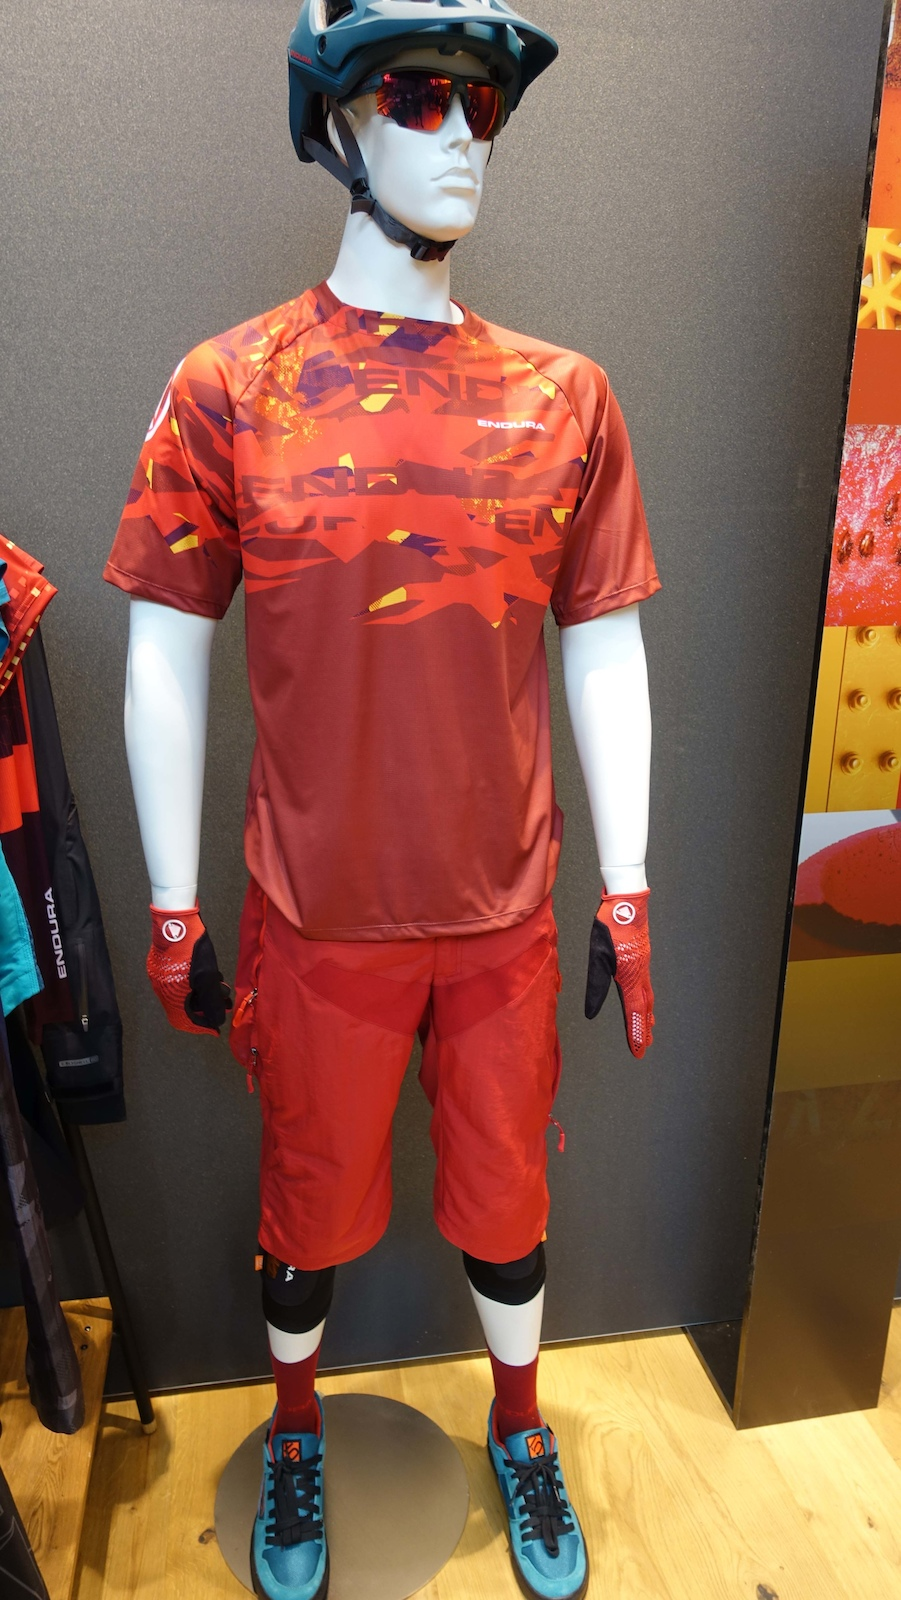 This is the men s version of the women s Singletrack and the colour is called rust red. The men s kit is the same price as the women s.